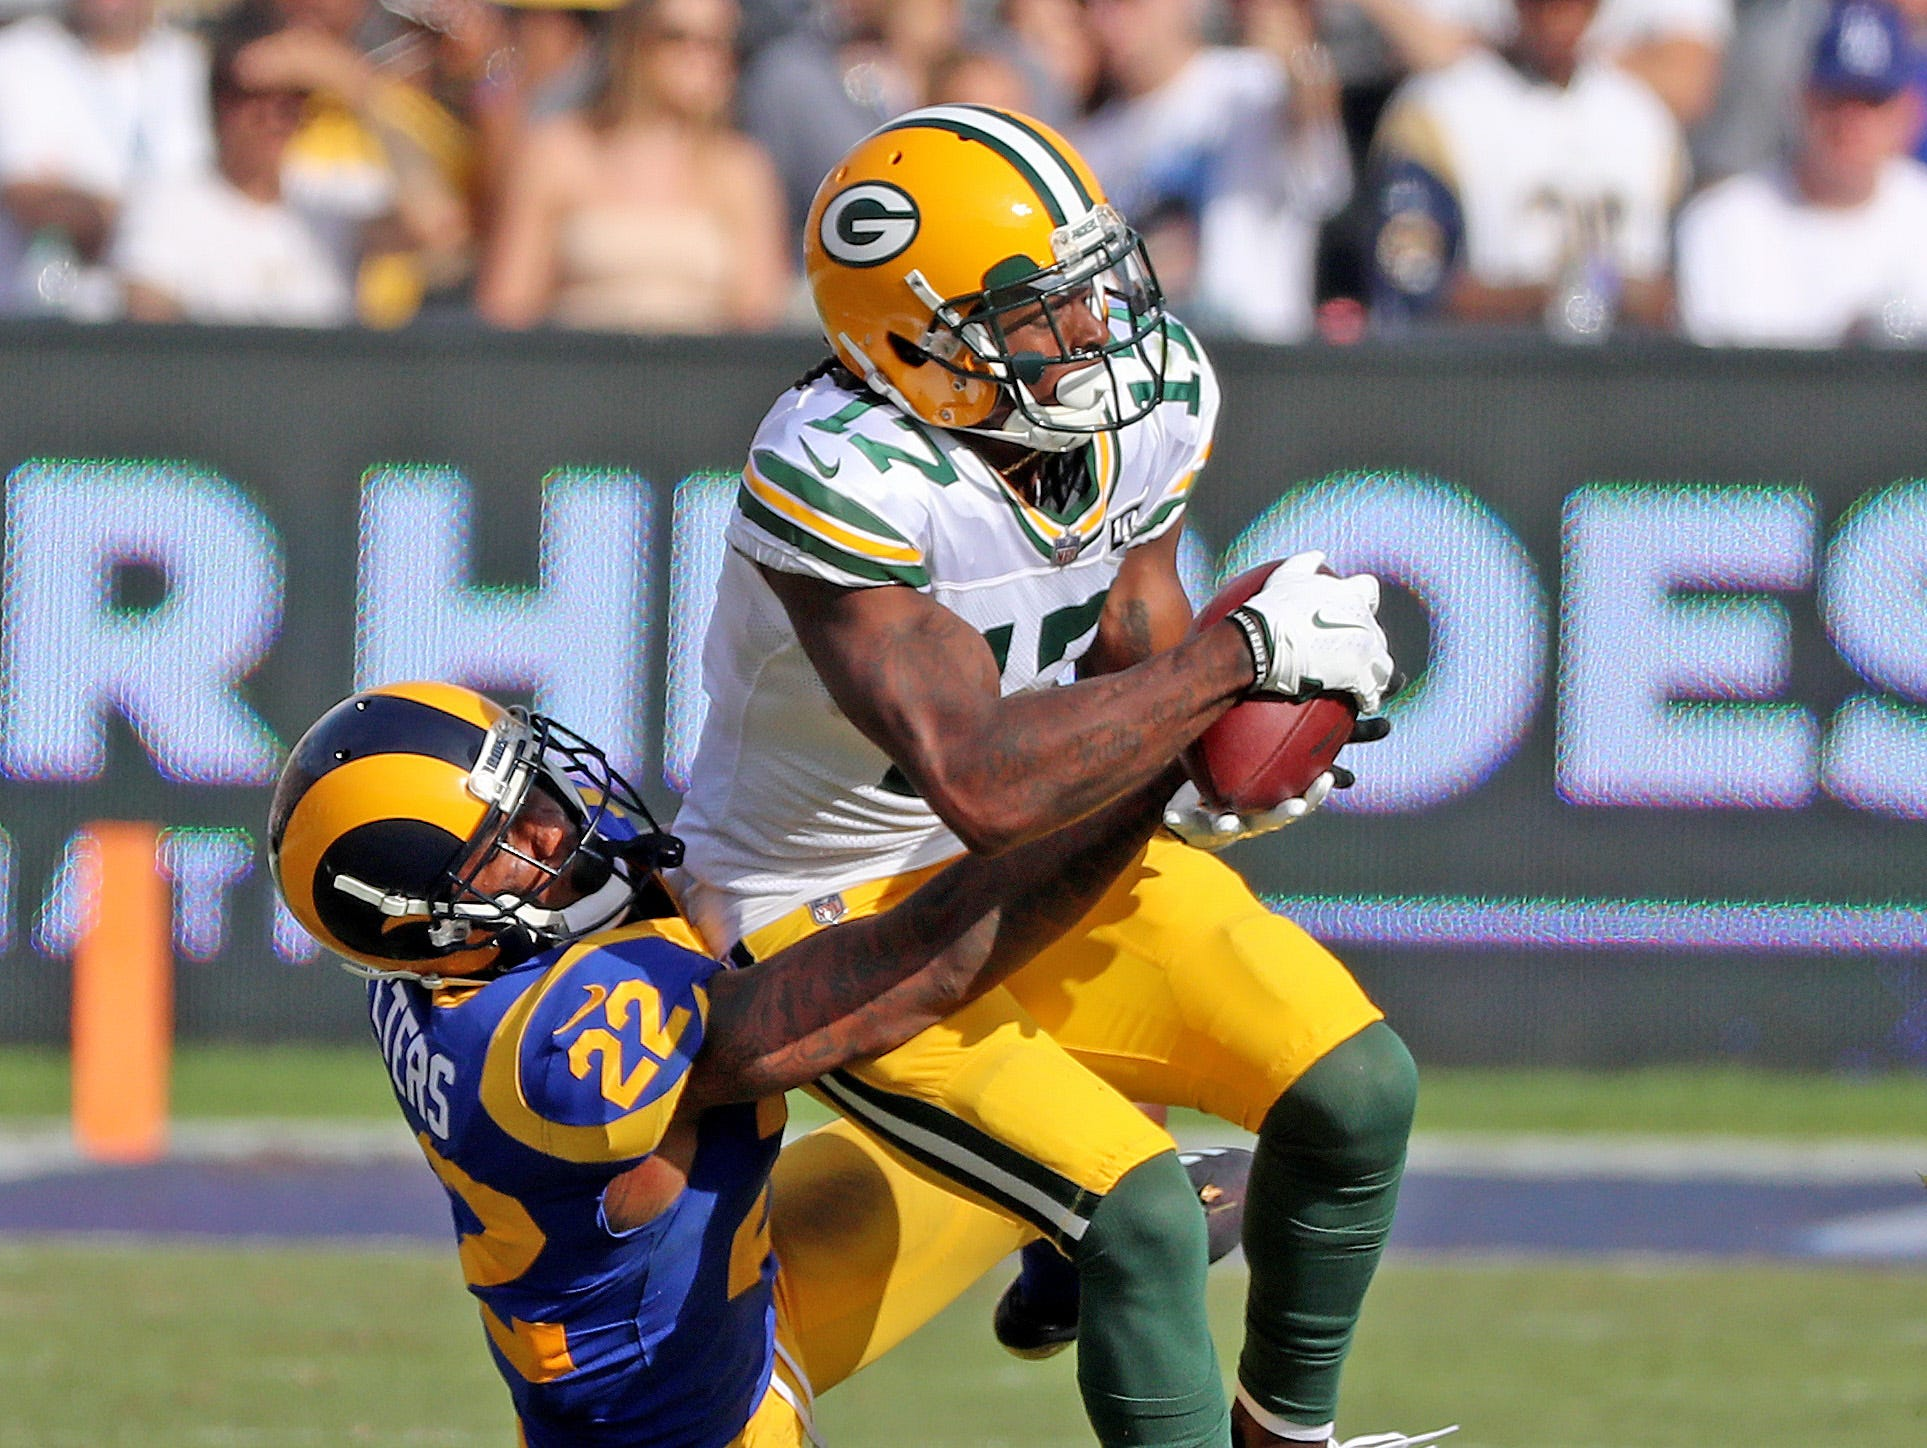 Green Bay Packers wide receiver Davante Adams (17) gets thrown down after a catch against cornerback Marcus Peters (22) of the LA Rams Sunday, October 28, 2018 at the Memorial Coliseum in Los Angeles, Cal. Jim Matthews/USA TODAY NETWORK-Wis